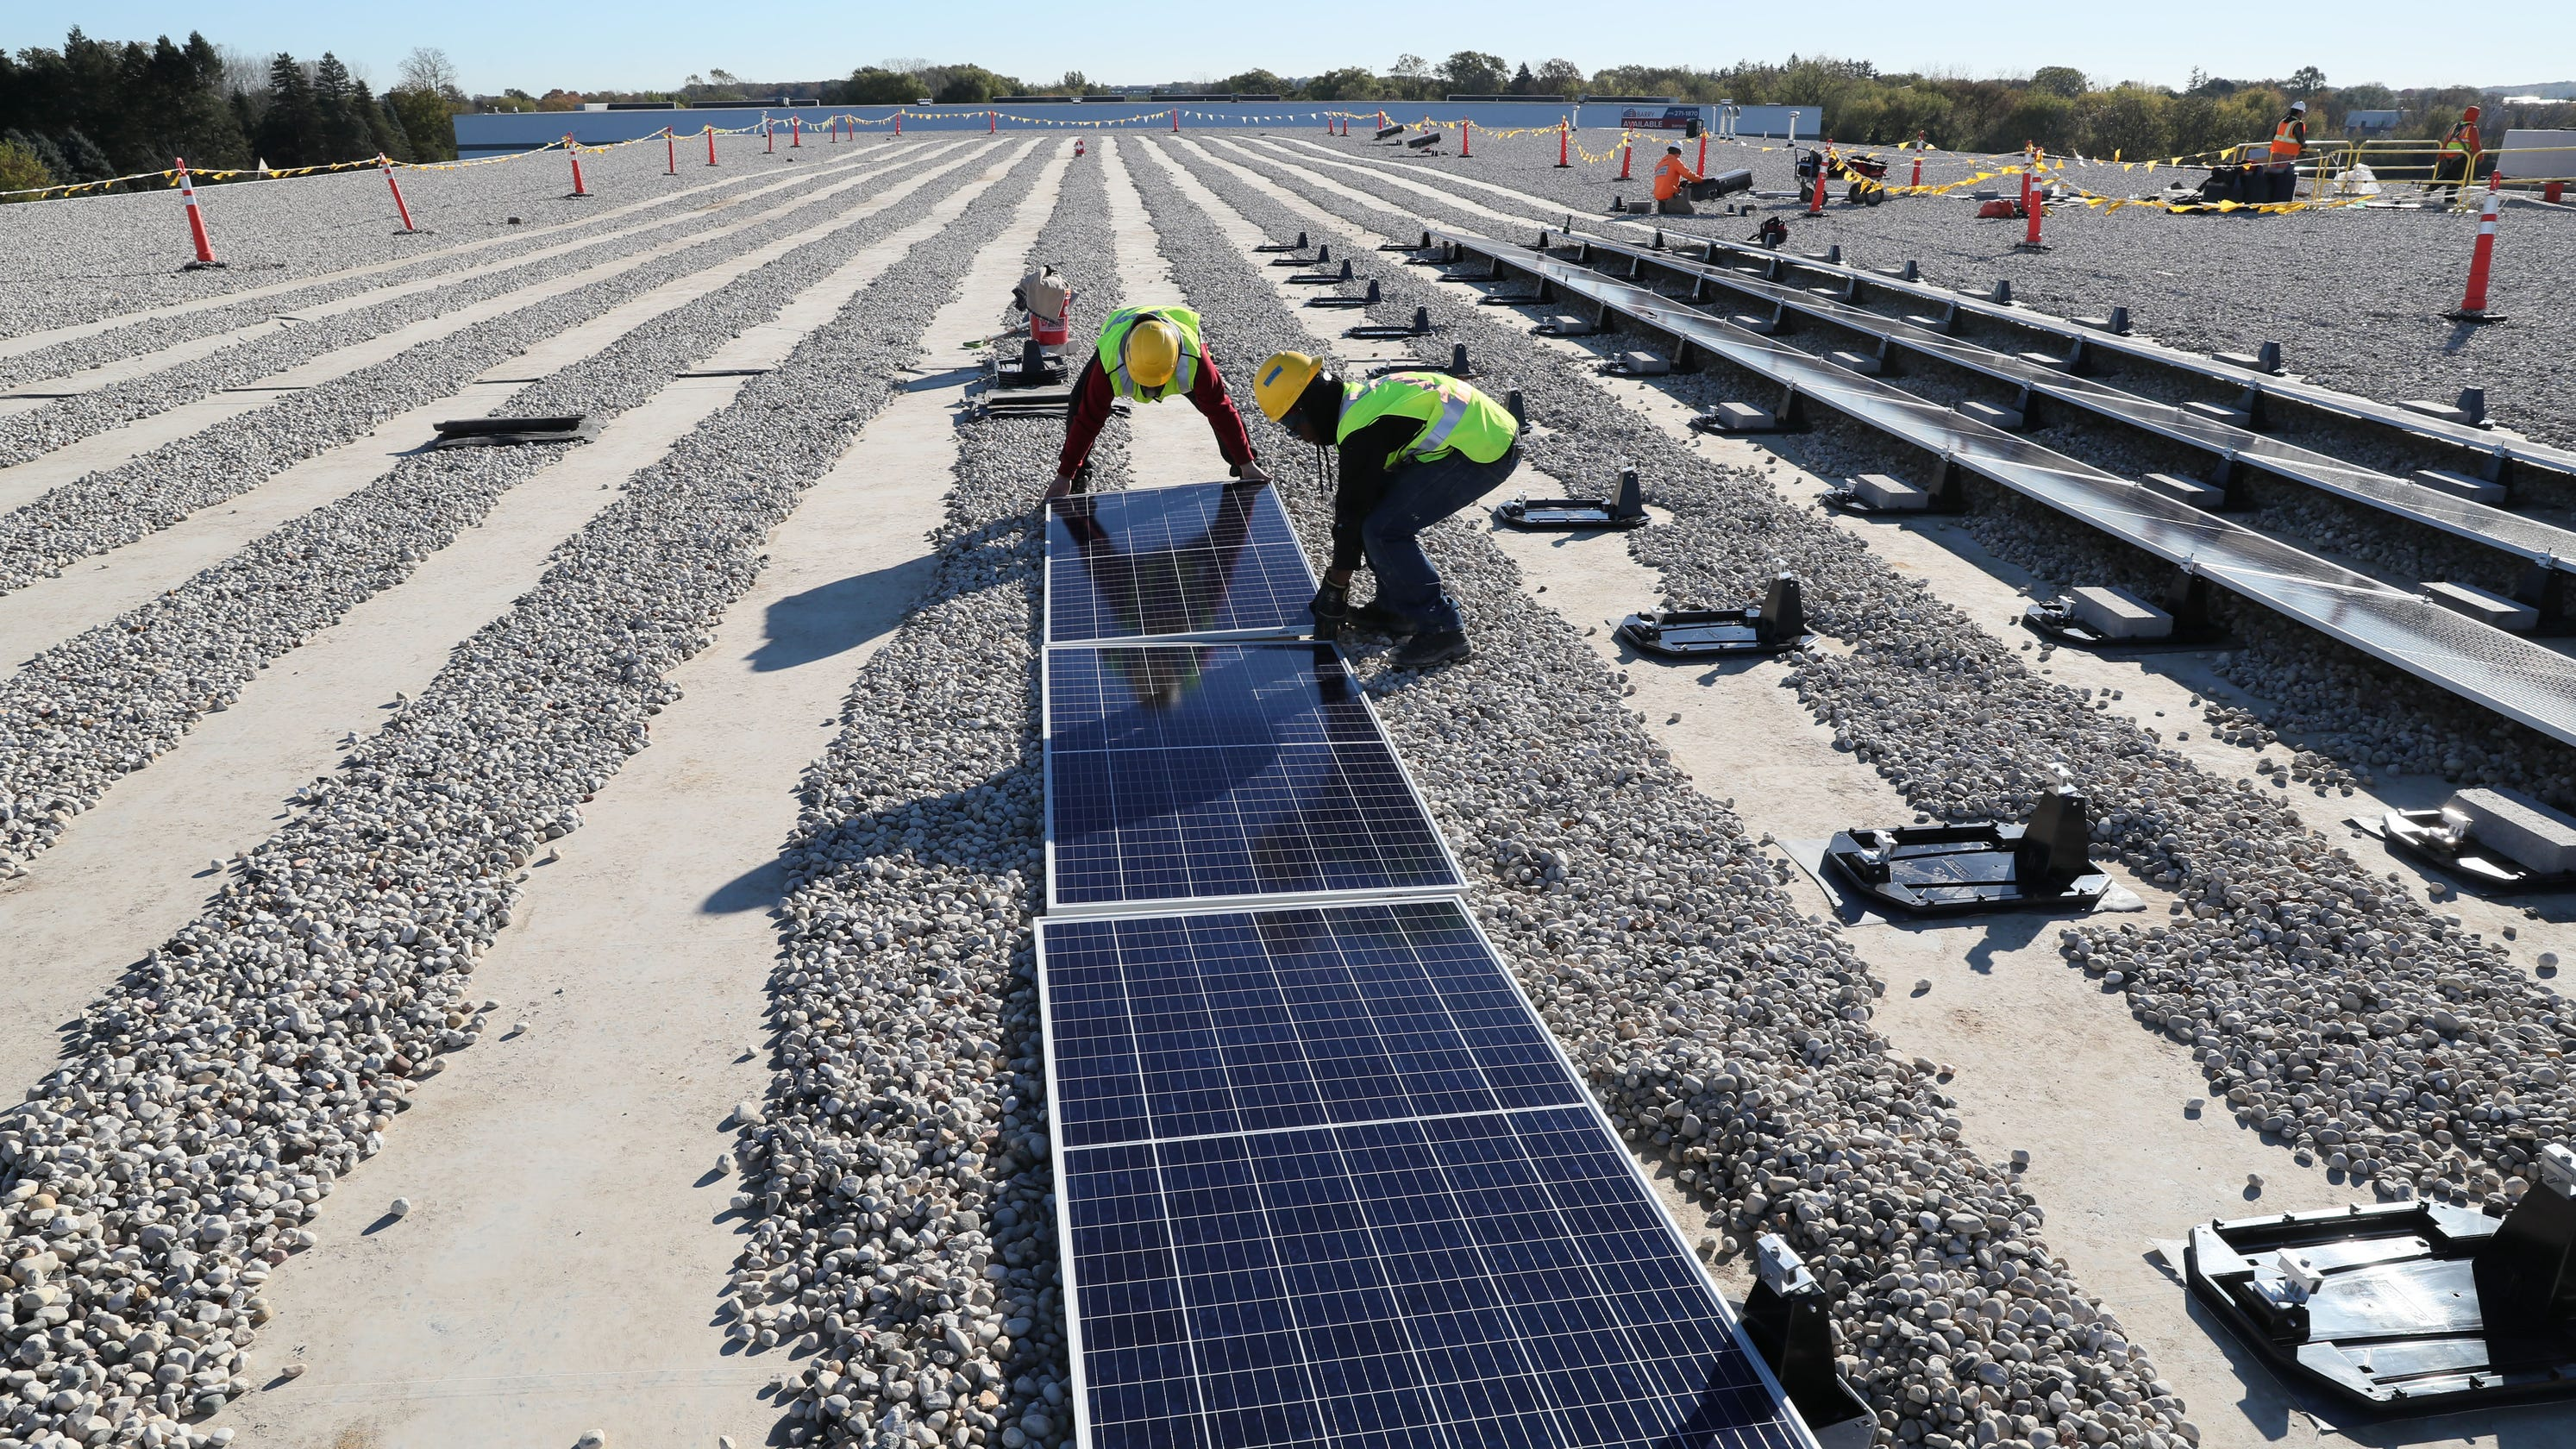 Solar power expansion in Wisconsin caught in policy dispute